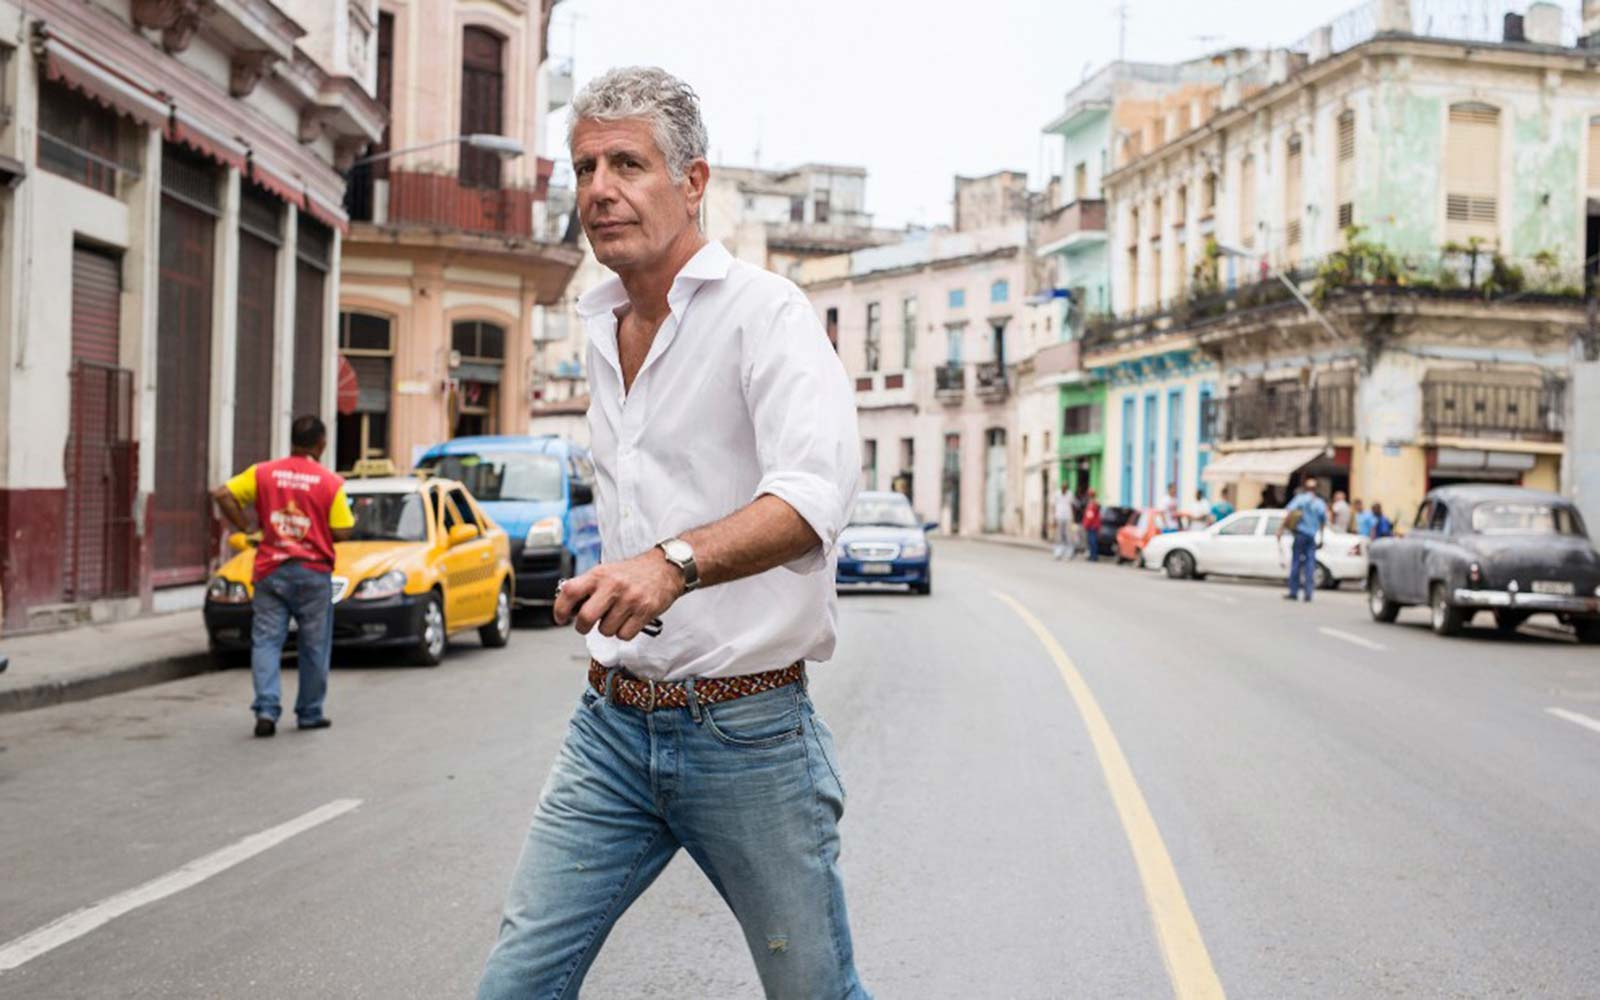 Anthony Bourdain Just Launched Travel Guides